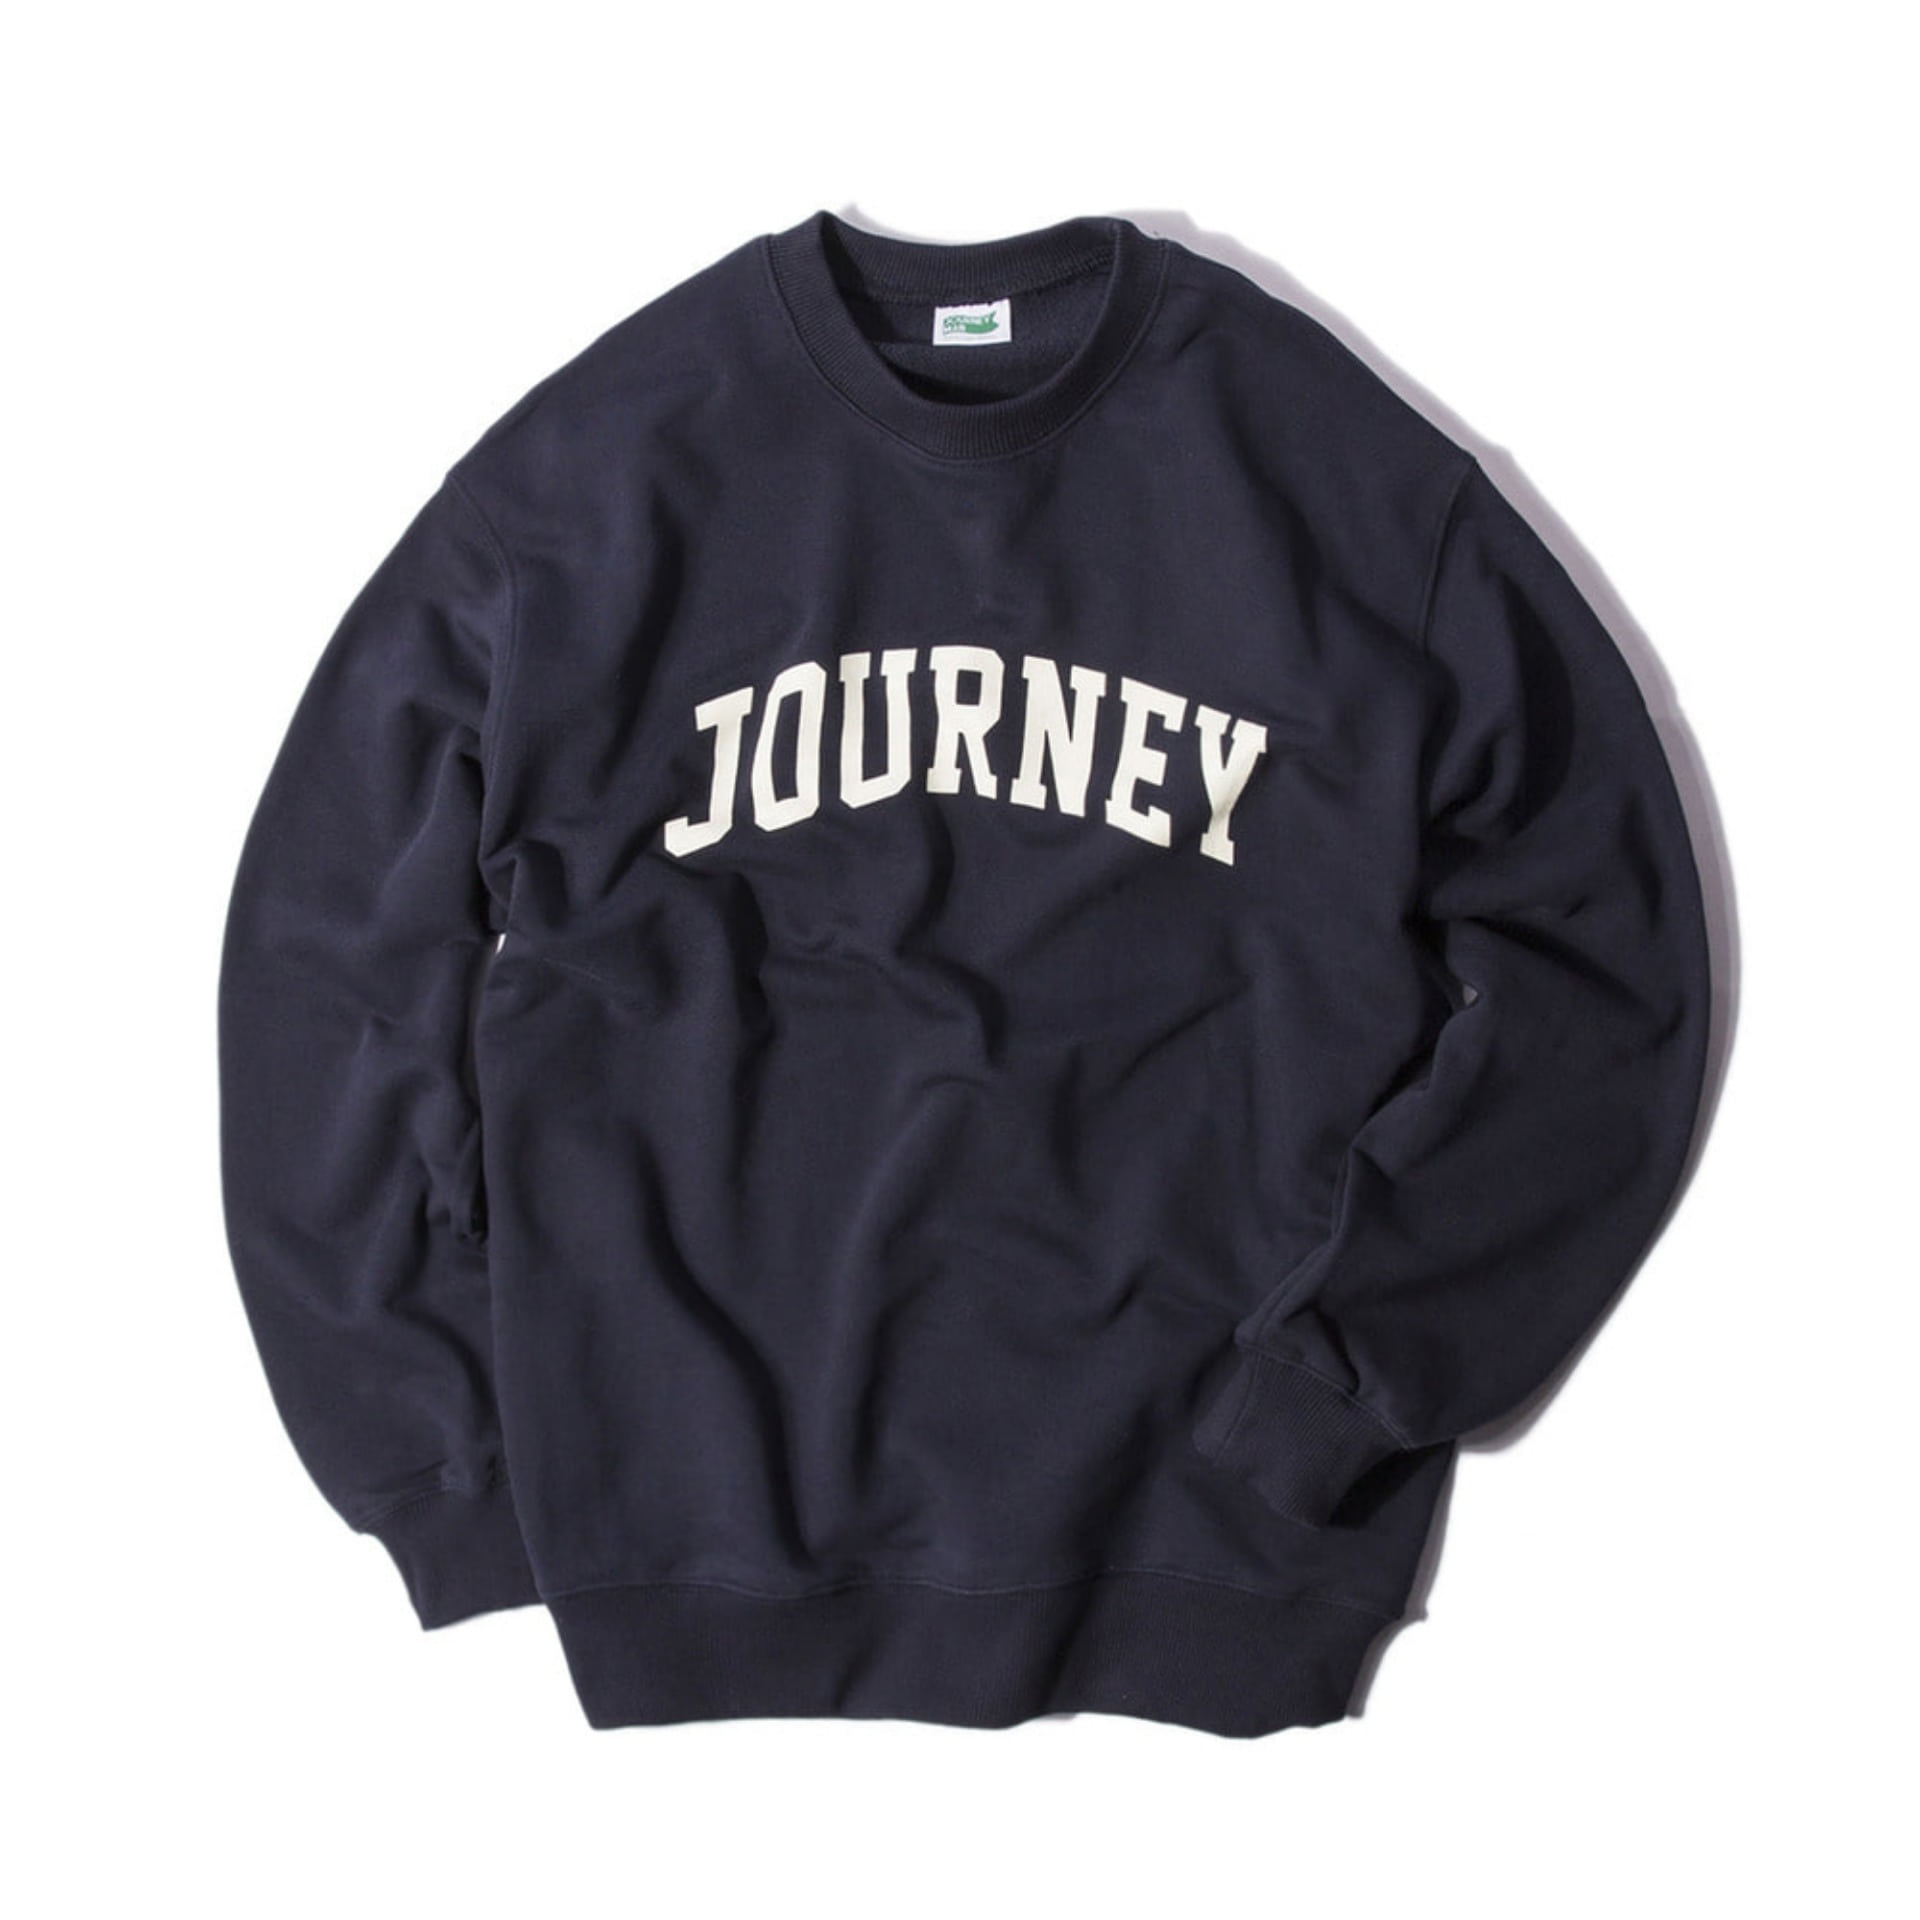 "COLLEGE COLLECTIONSTANDARD FIT""JOURNEY LOGO""(NAVY)"